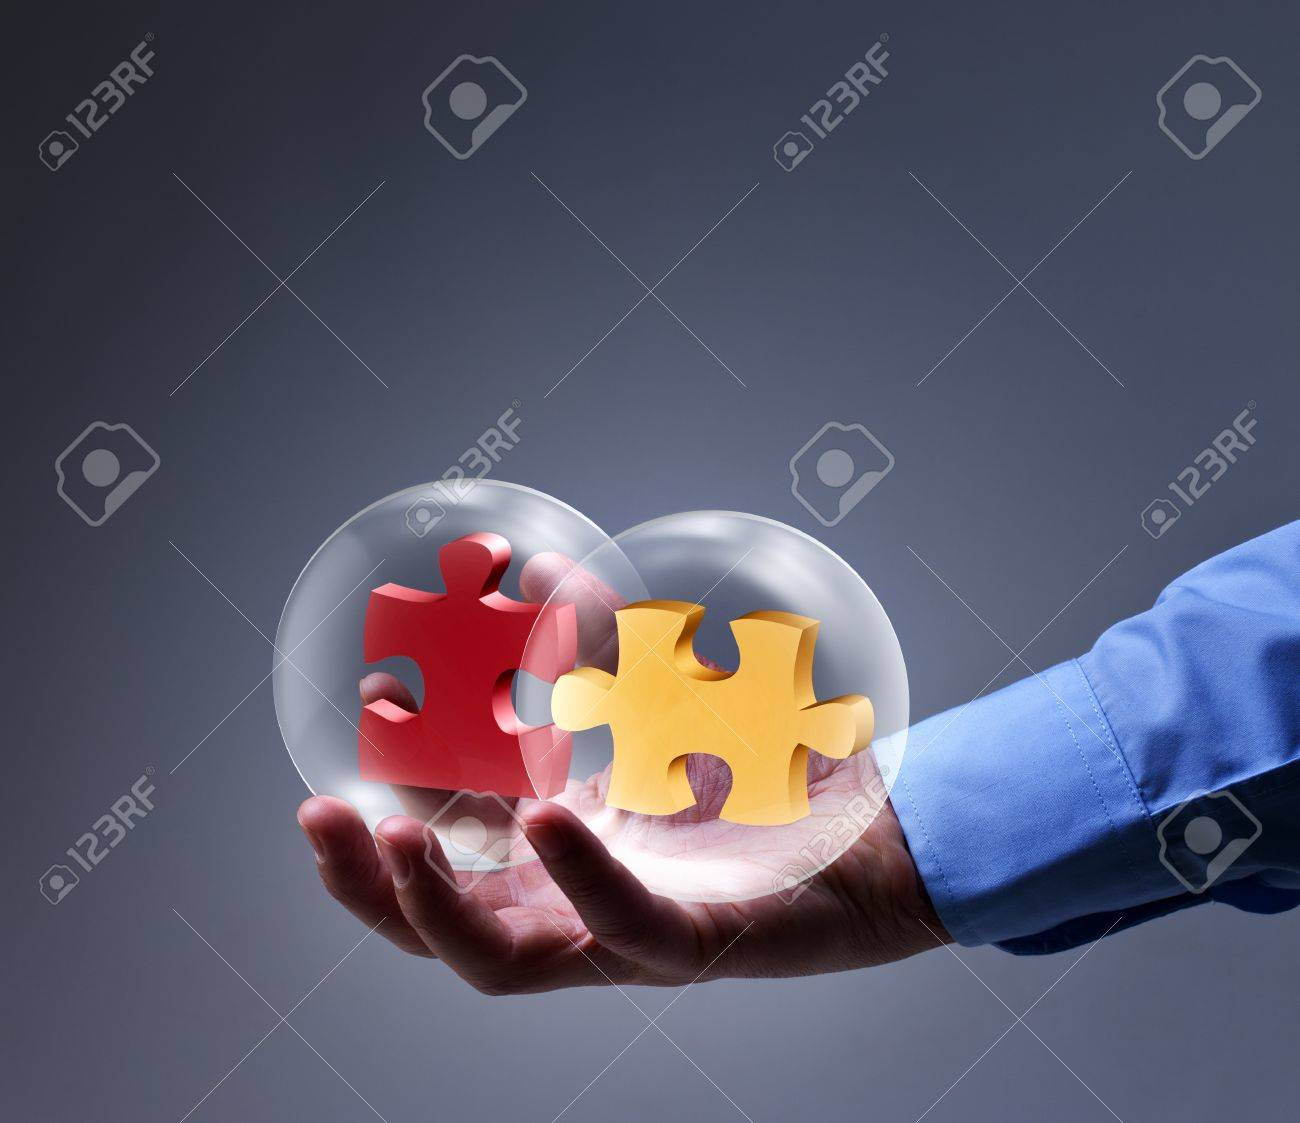 Businessman presenting a brand new solution - two puzzle pieces in glass spheres Stock Photo - 17931663